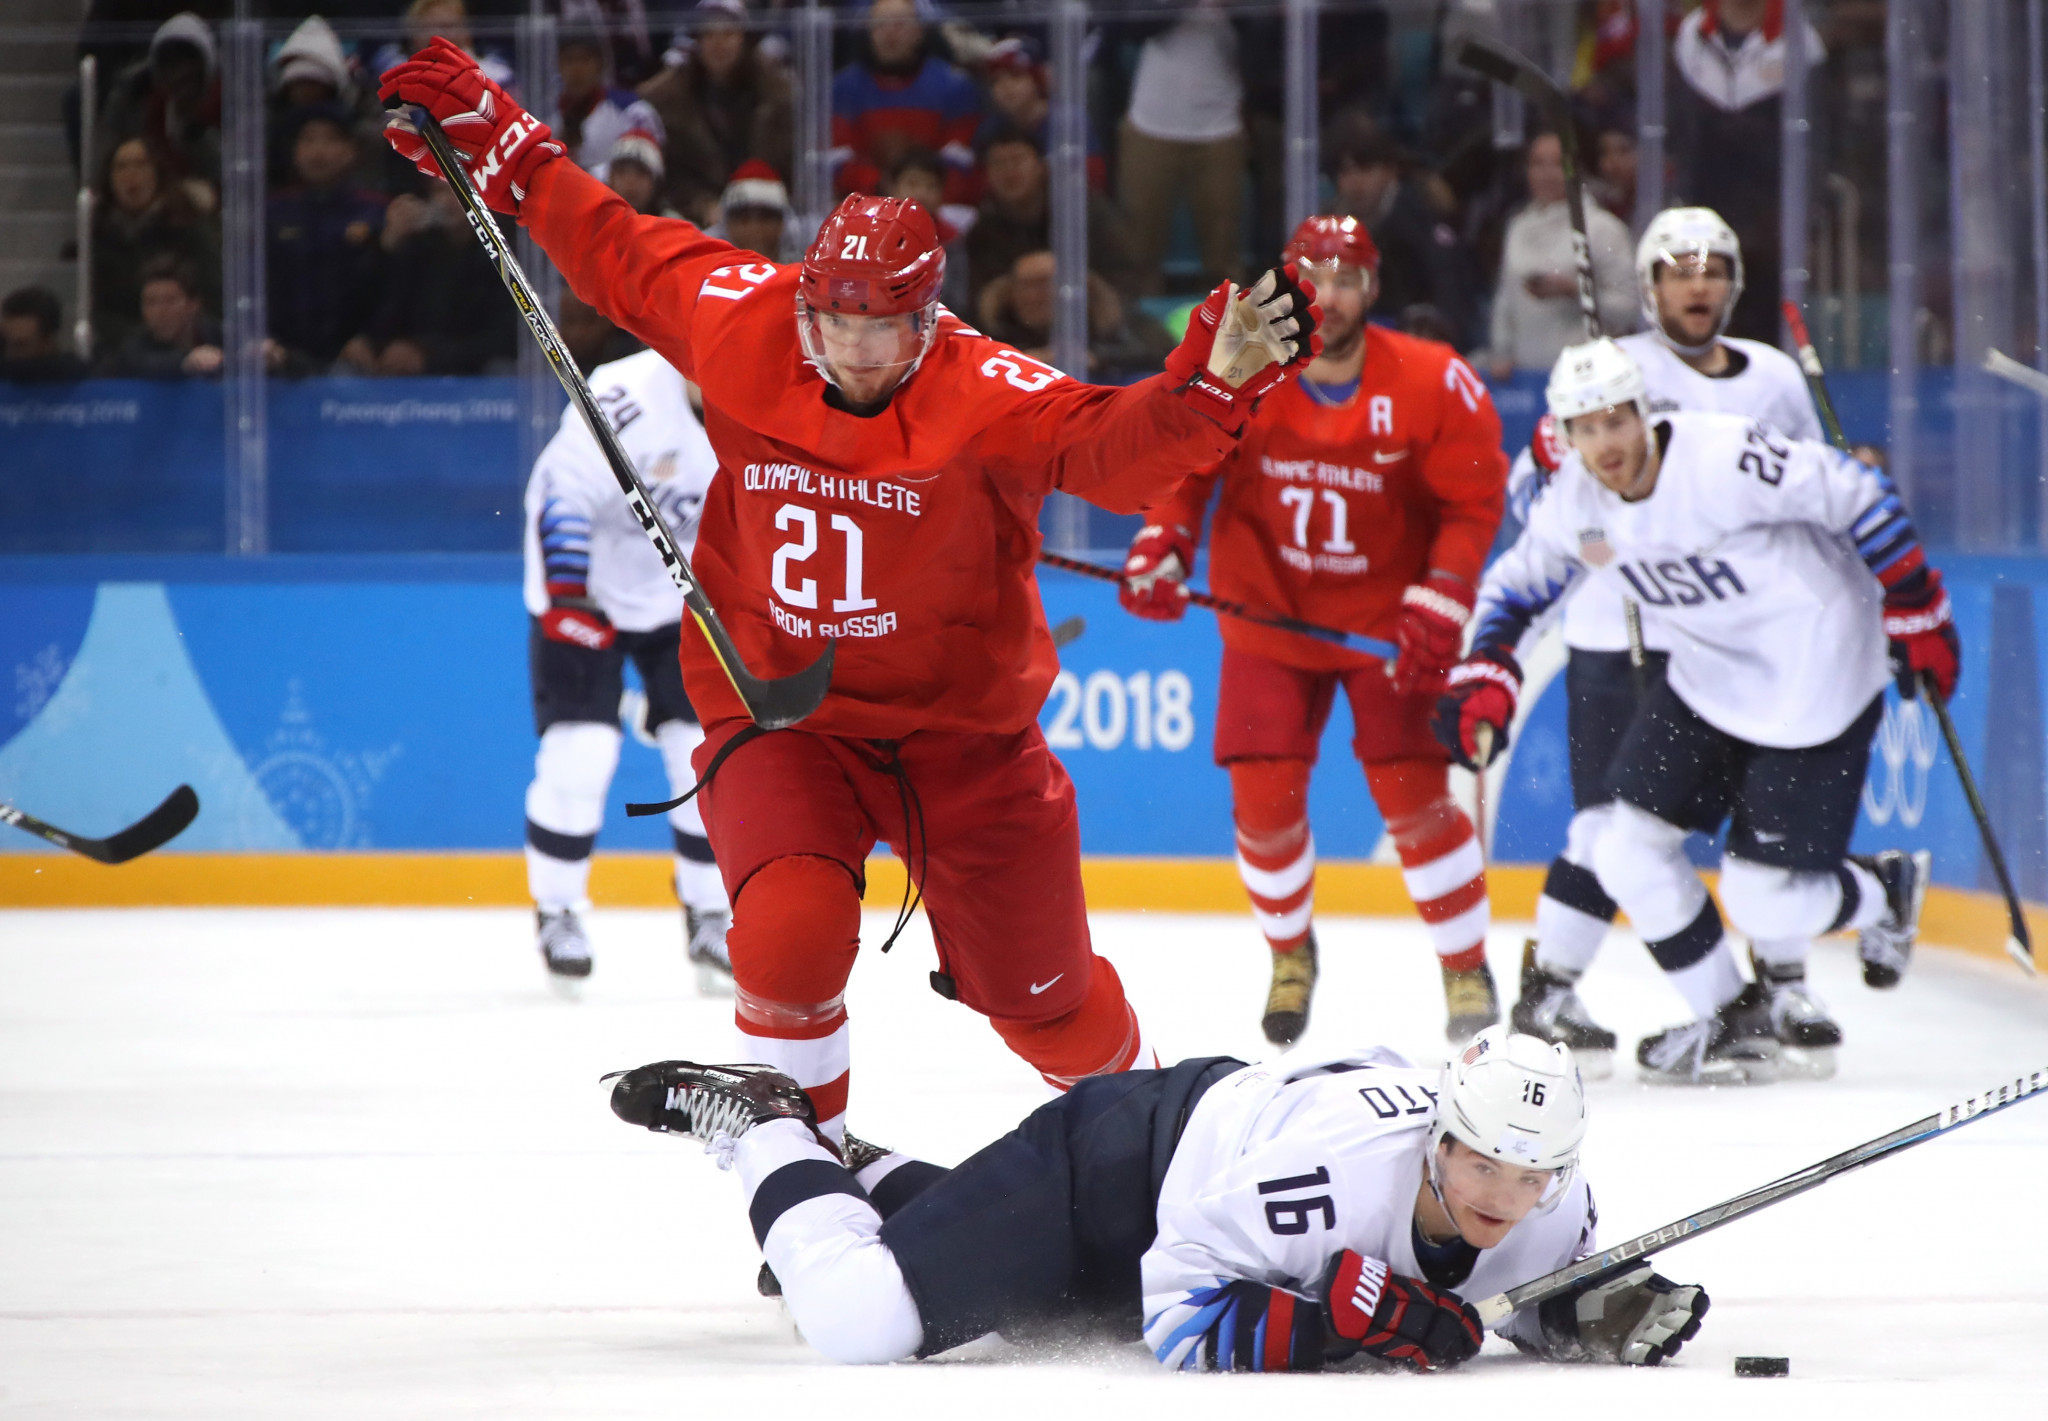 Russian athletes competed as neutrals at Pyeongchang 2018 under the banner